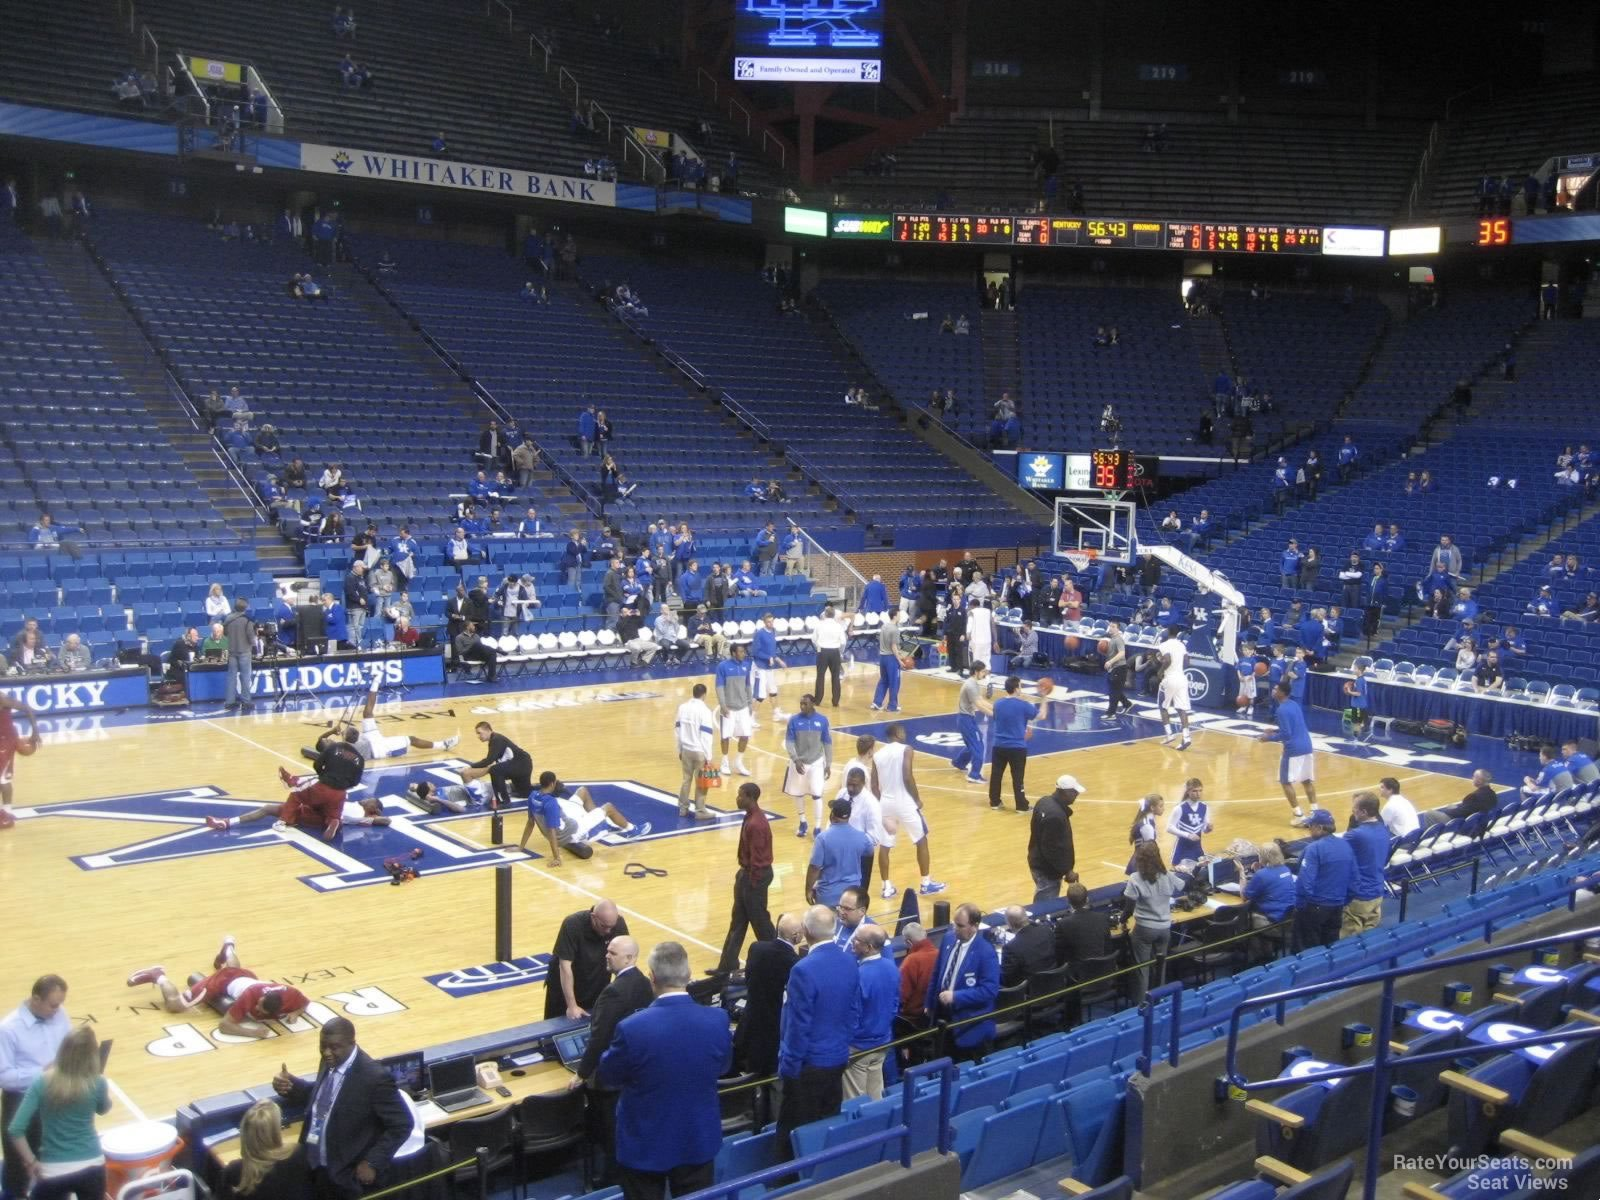 Seat View for Rupp Arena Section 32, Row F